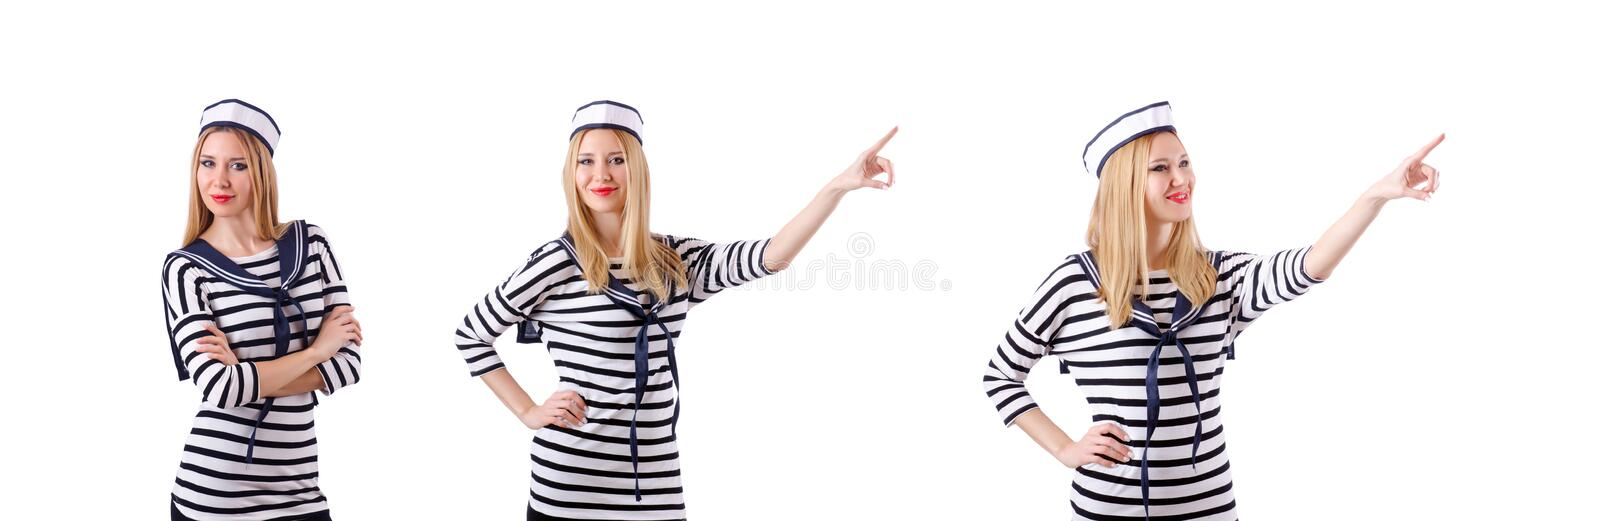 The woman sailor in marine concept. Woman sailor in marine concept royalty free stock photos